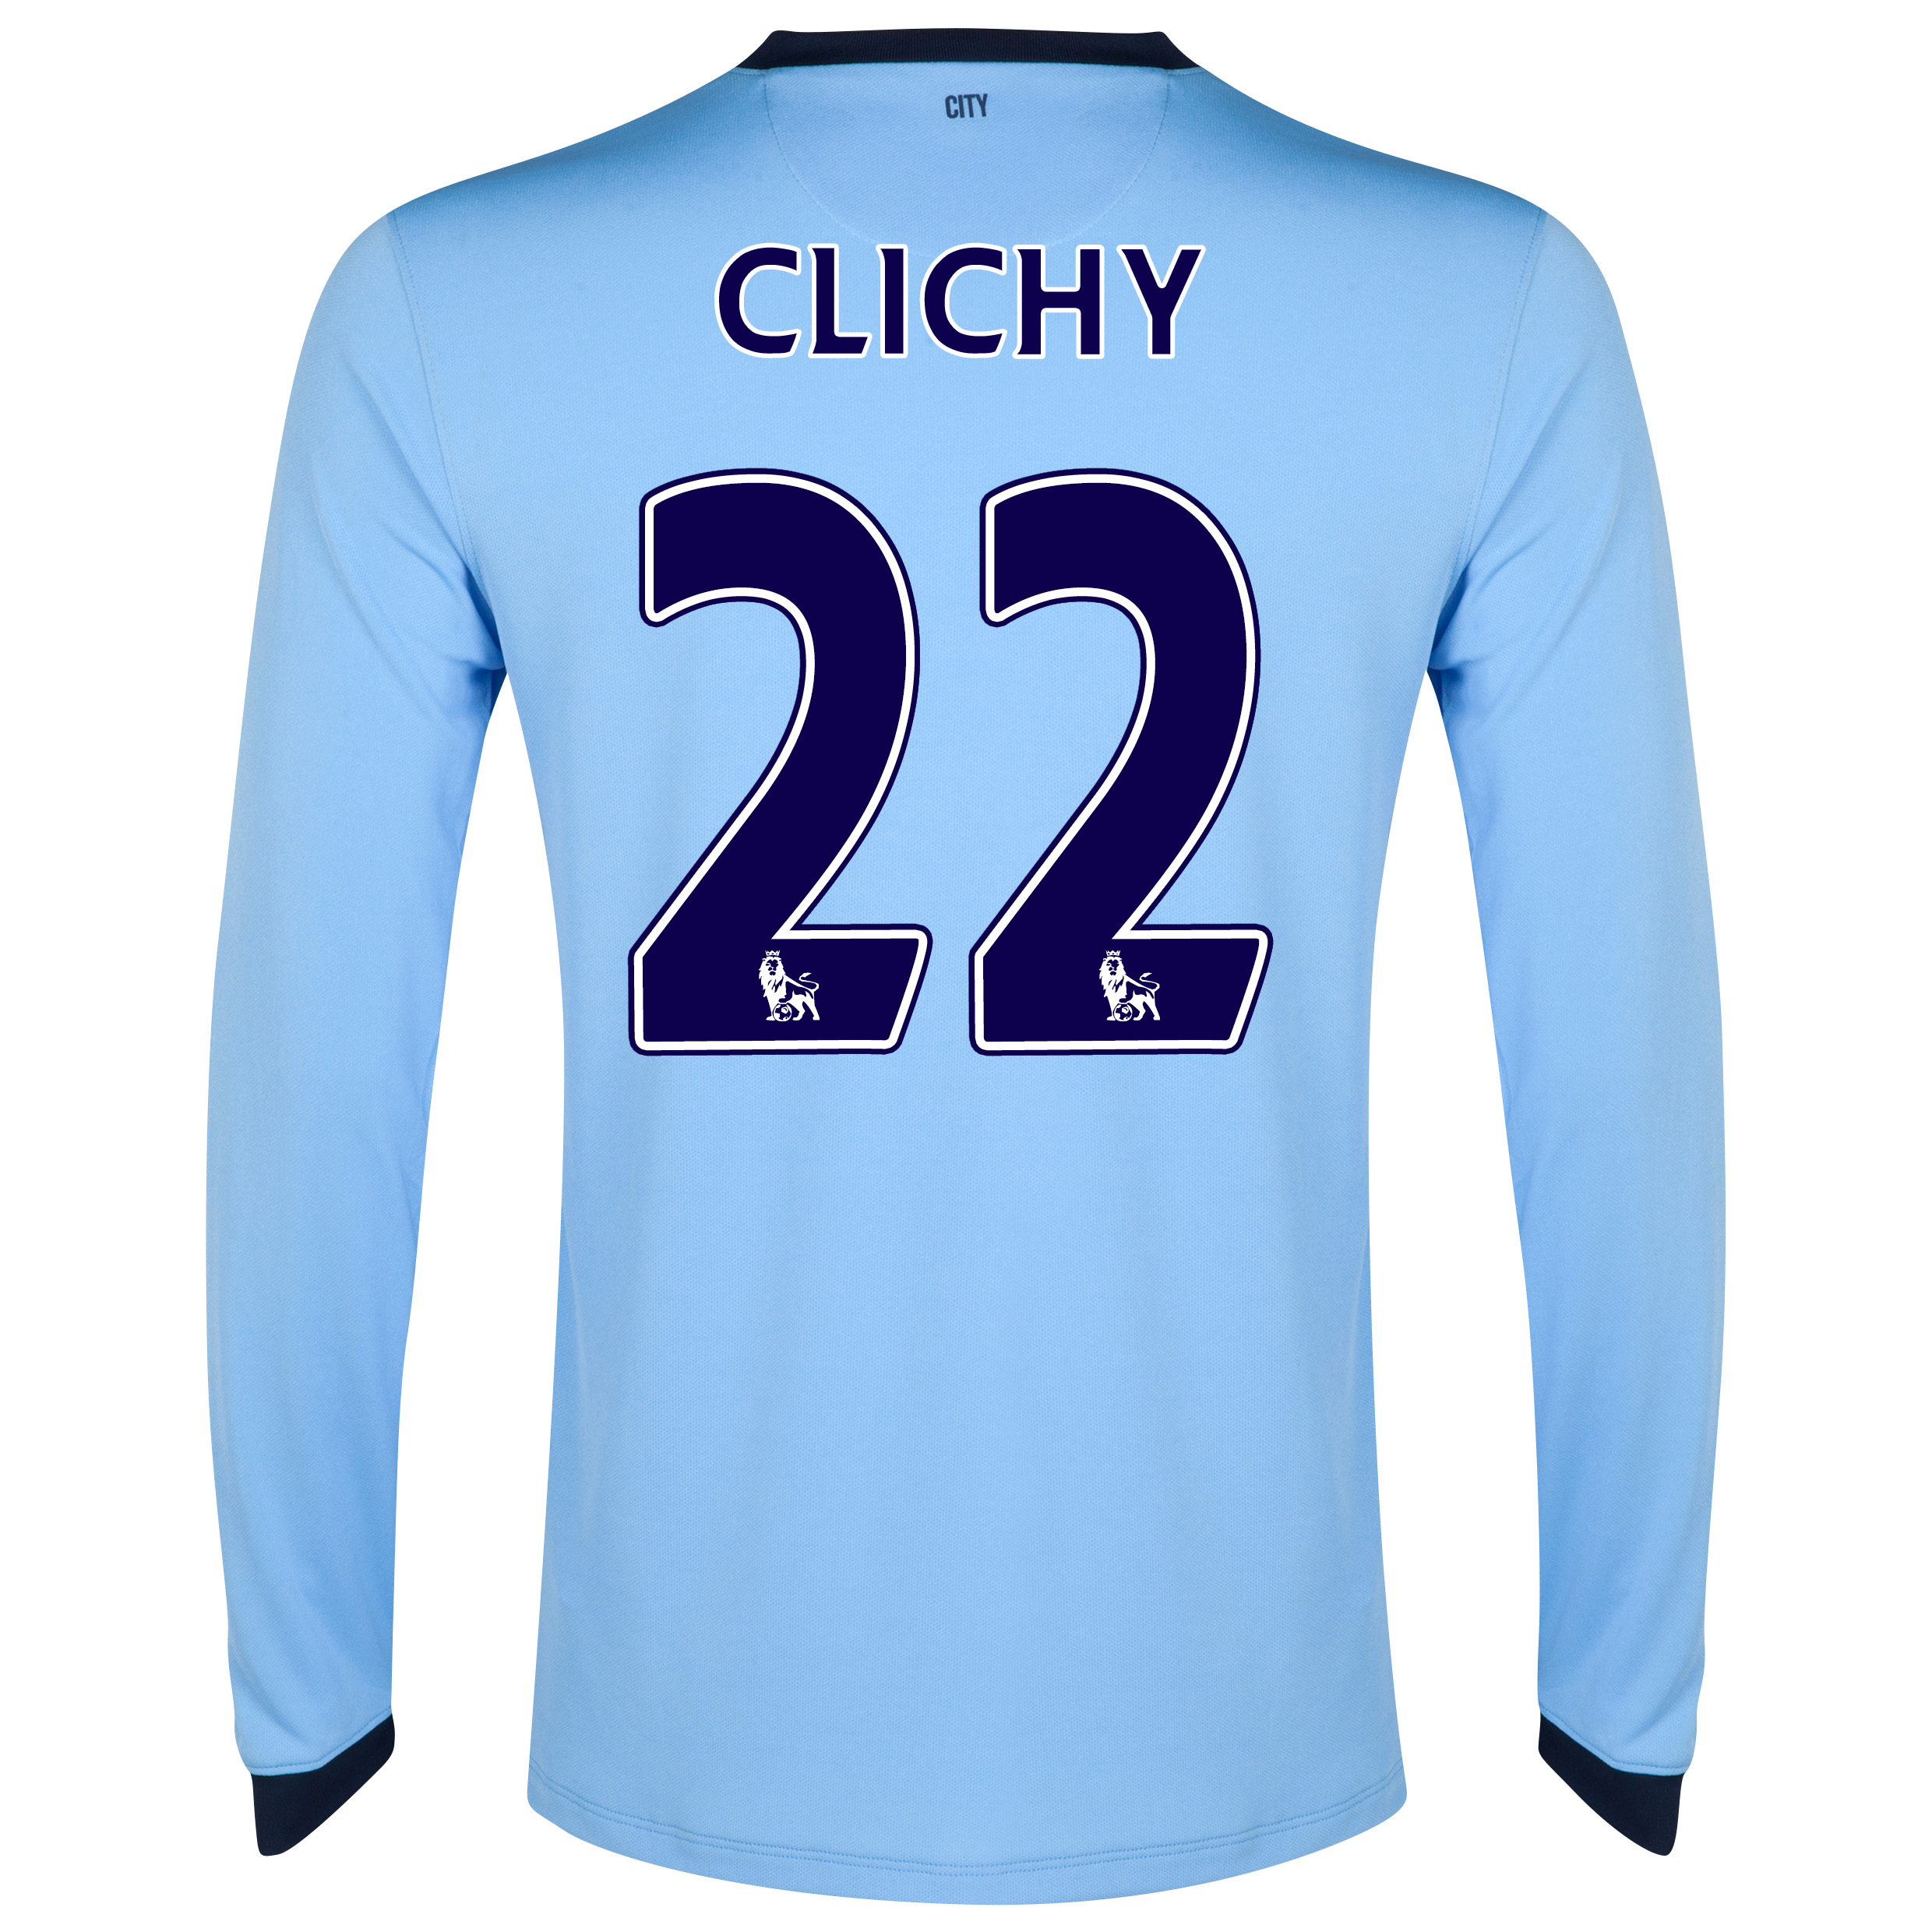 Manchester City Home Shirt 2014/15 - Long Sleeve Sky Blue with Clichy 22 printing